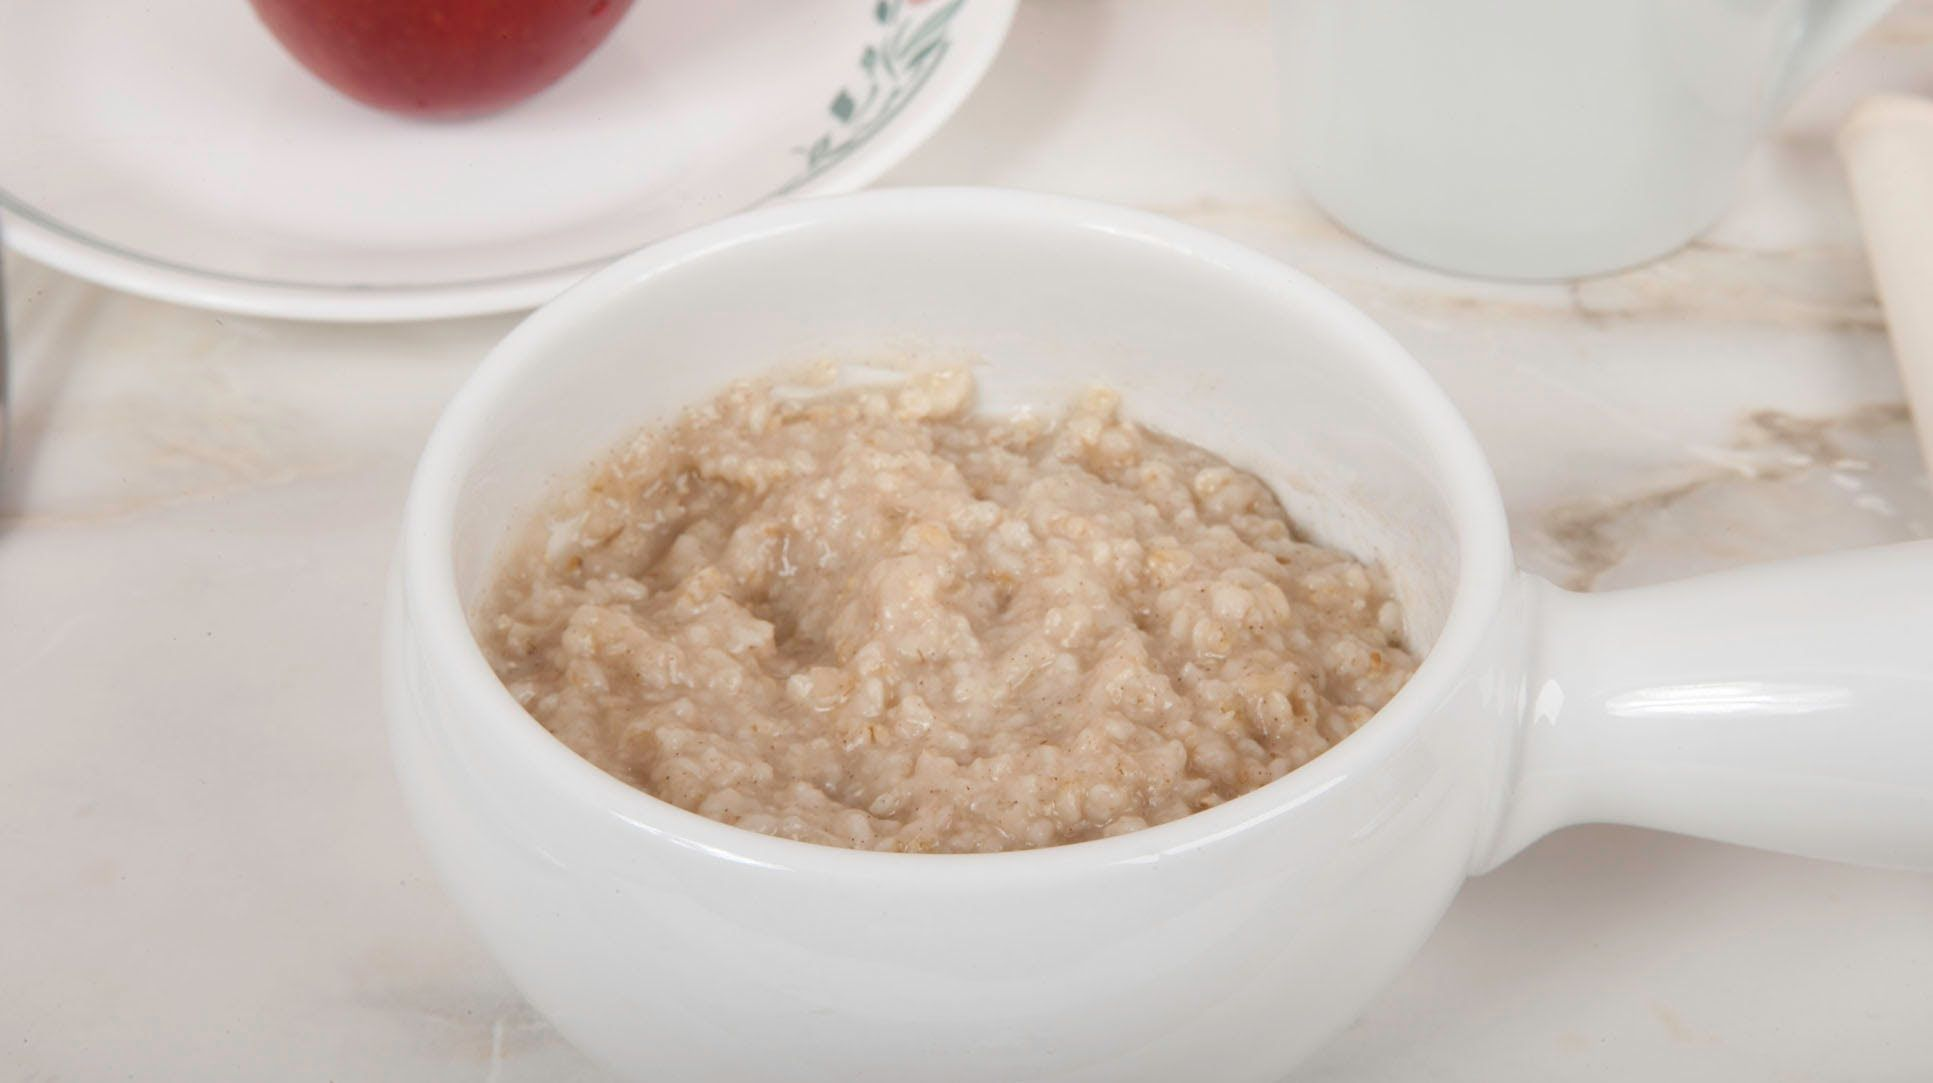 Homemade Oatmeal Without Preservatives And Artificial Flavors Made